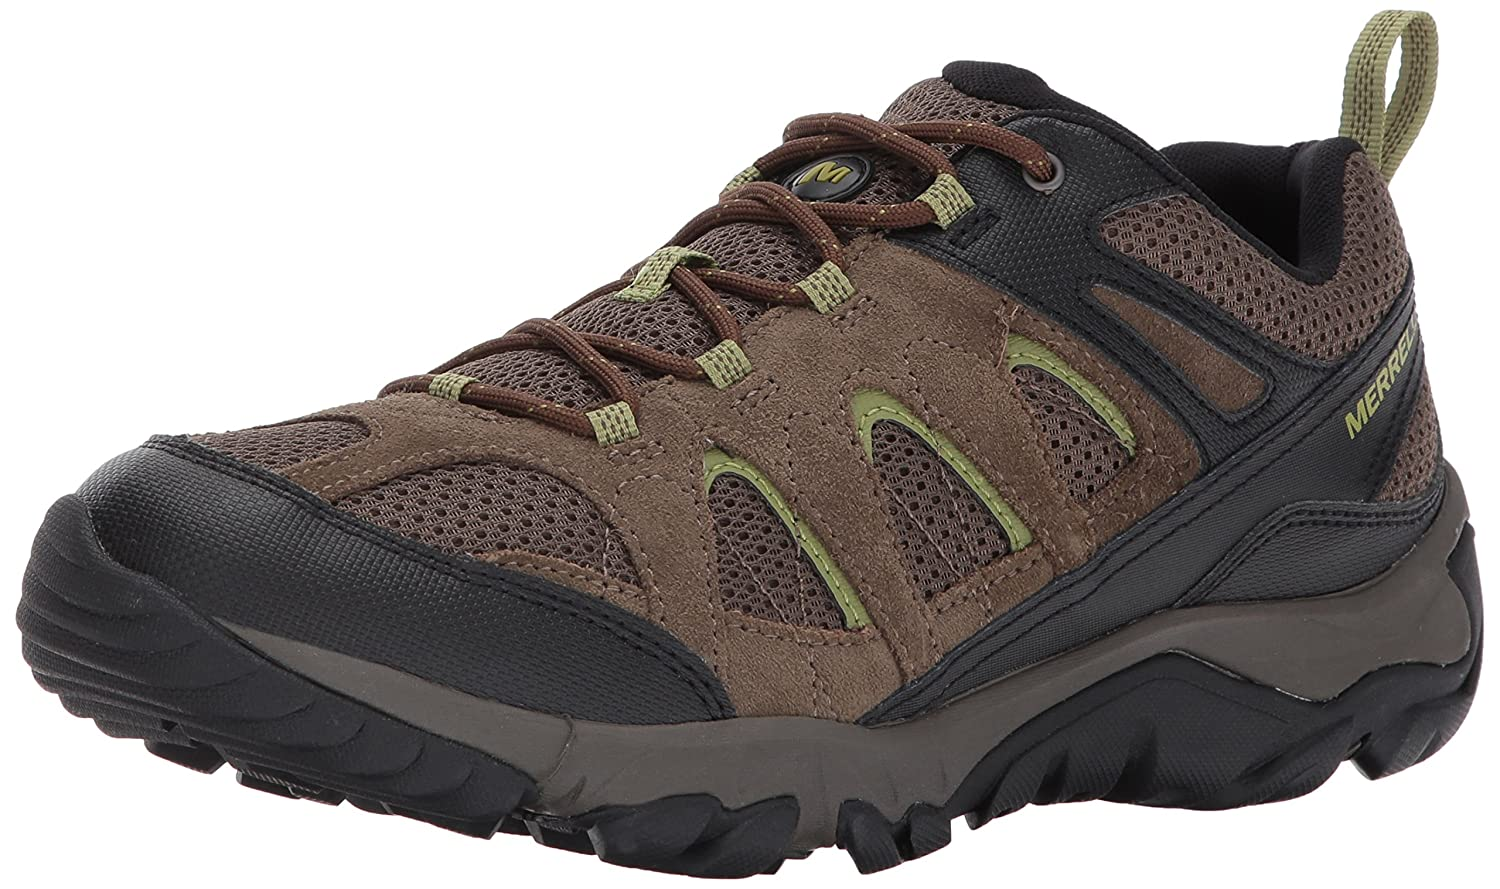 Merrell Women's Outmost Vent Hiking Boot B01N0QY2ZJ 10.5 D(M) US|Boulder/Brown1